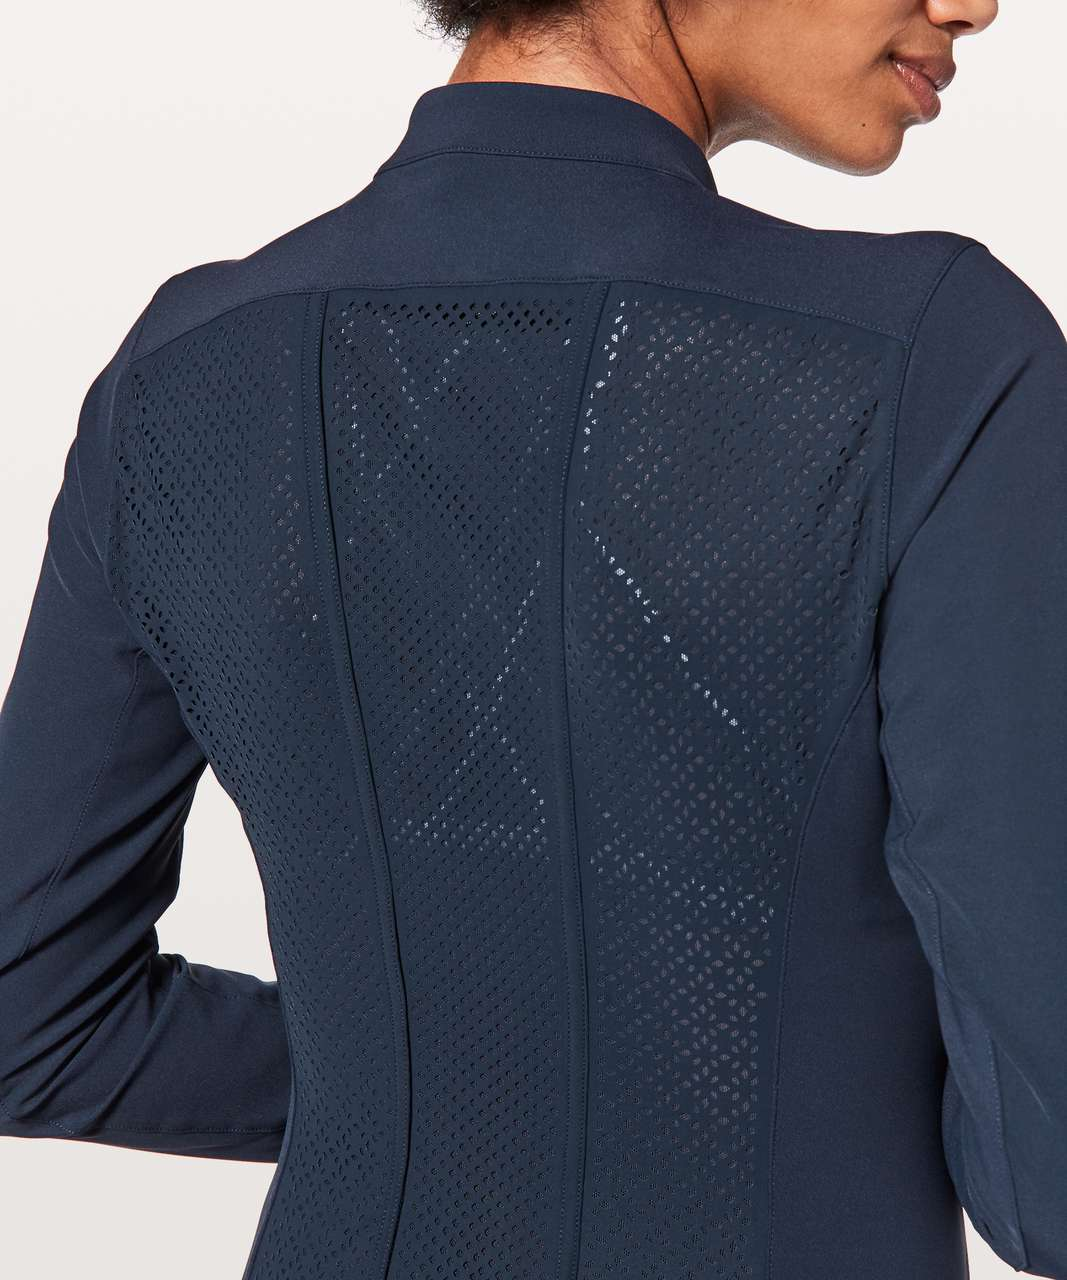 Lululemon Get Your Peek On Jacket - True Navy